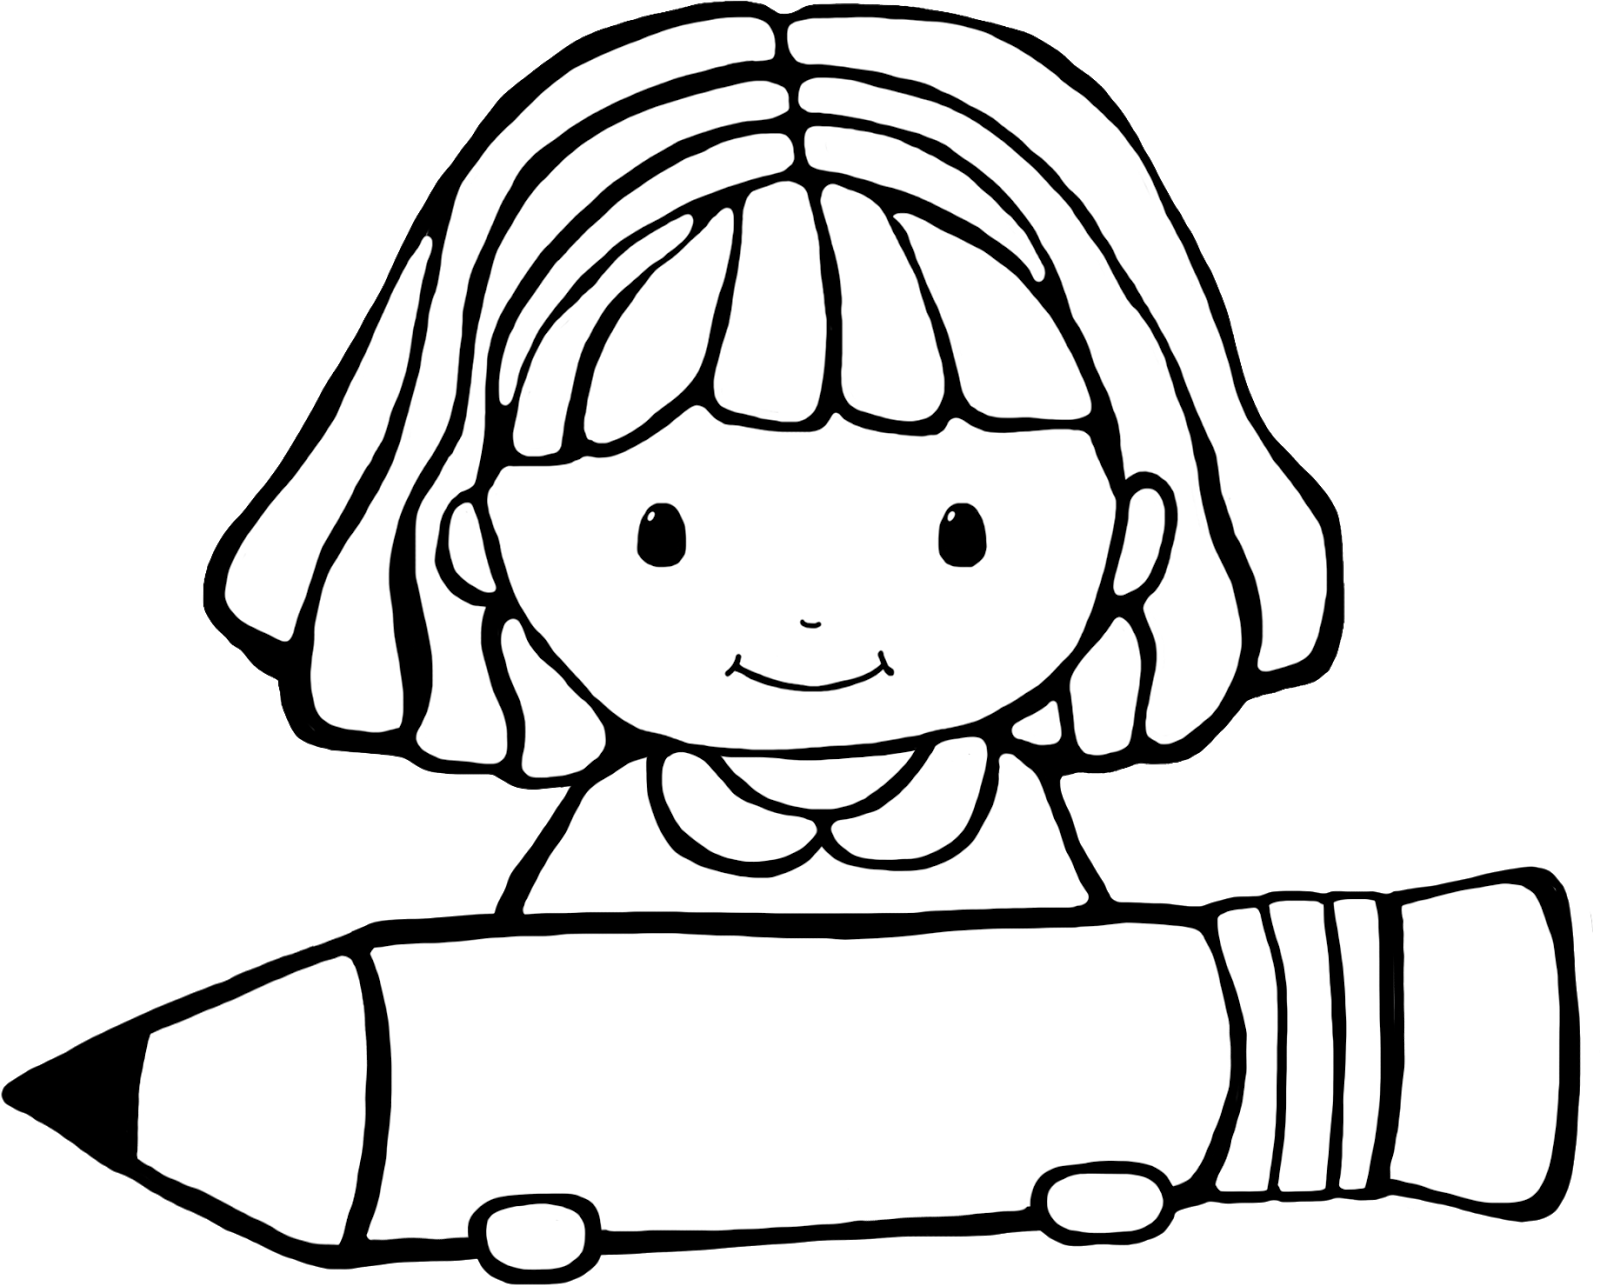 clipart library download  collection of boy. Pencil writing clipart black and white